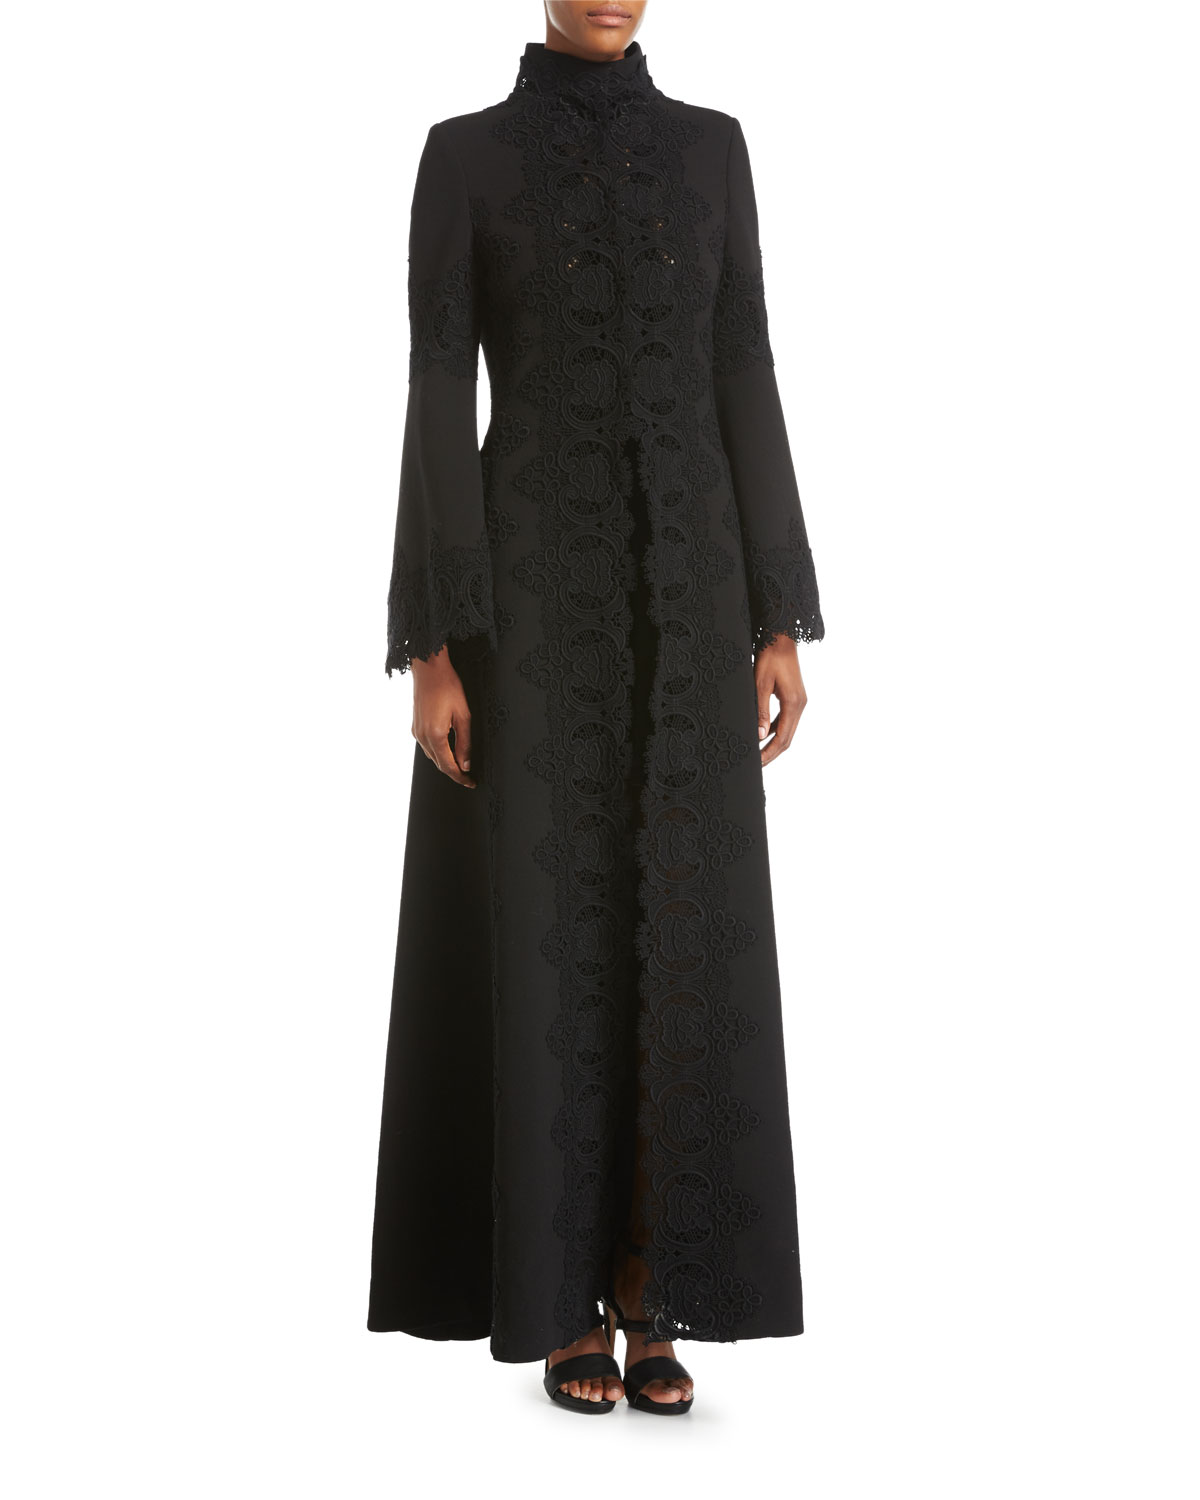 Macramé-Trim Long Dress Coat